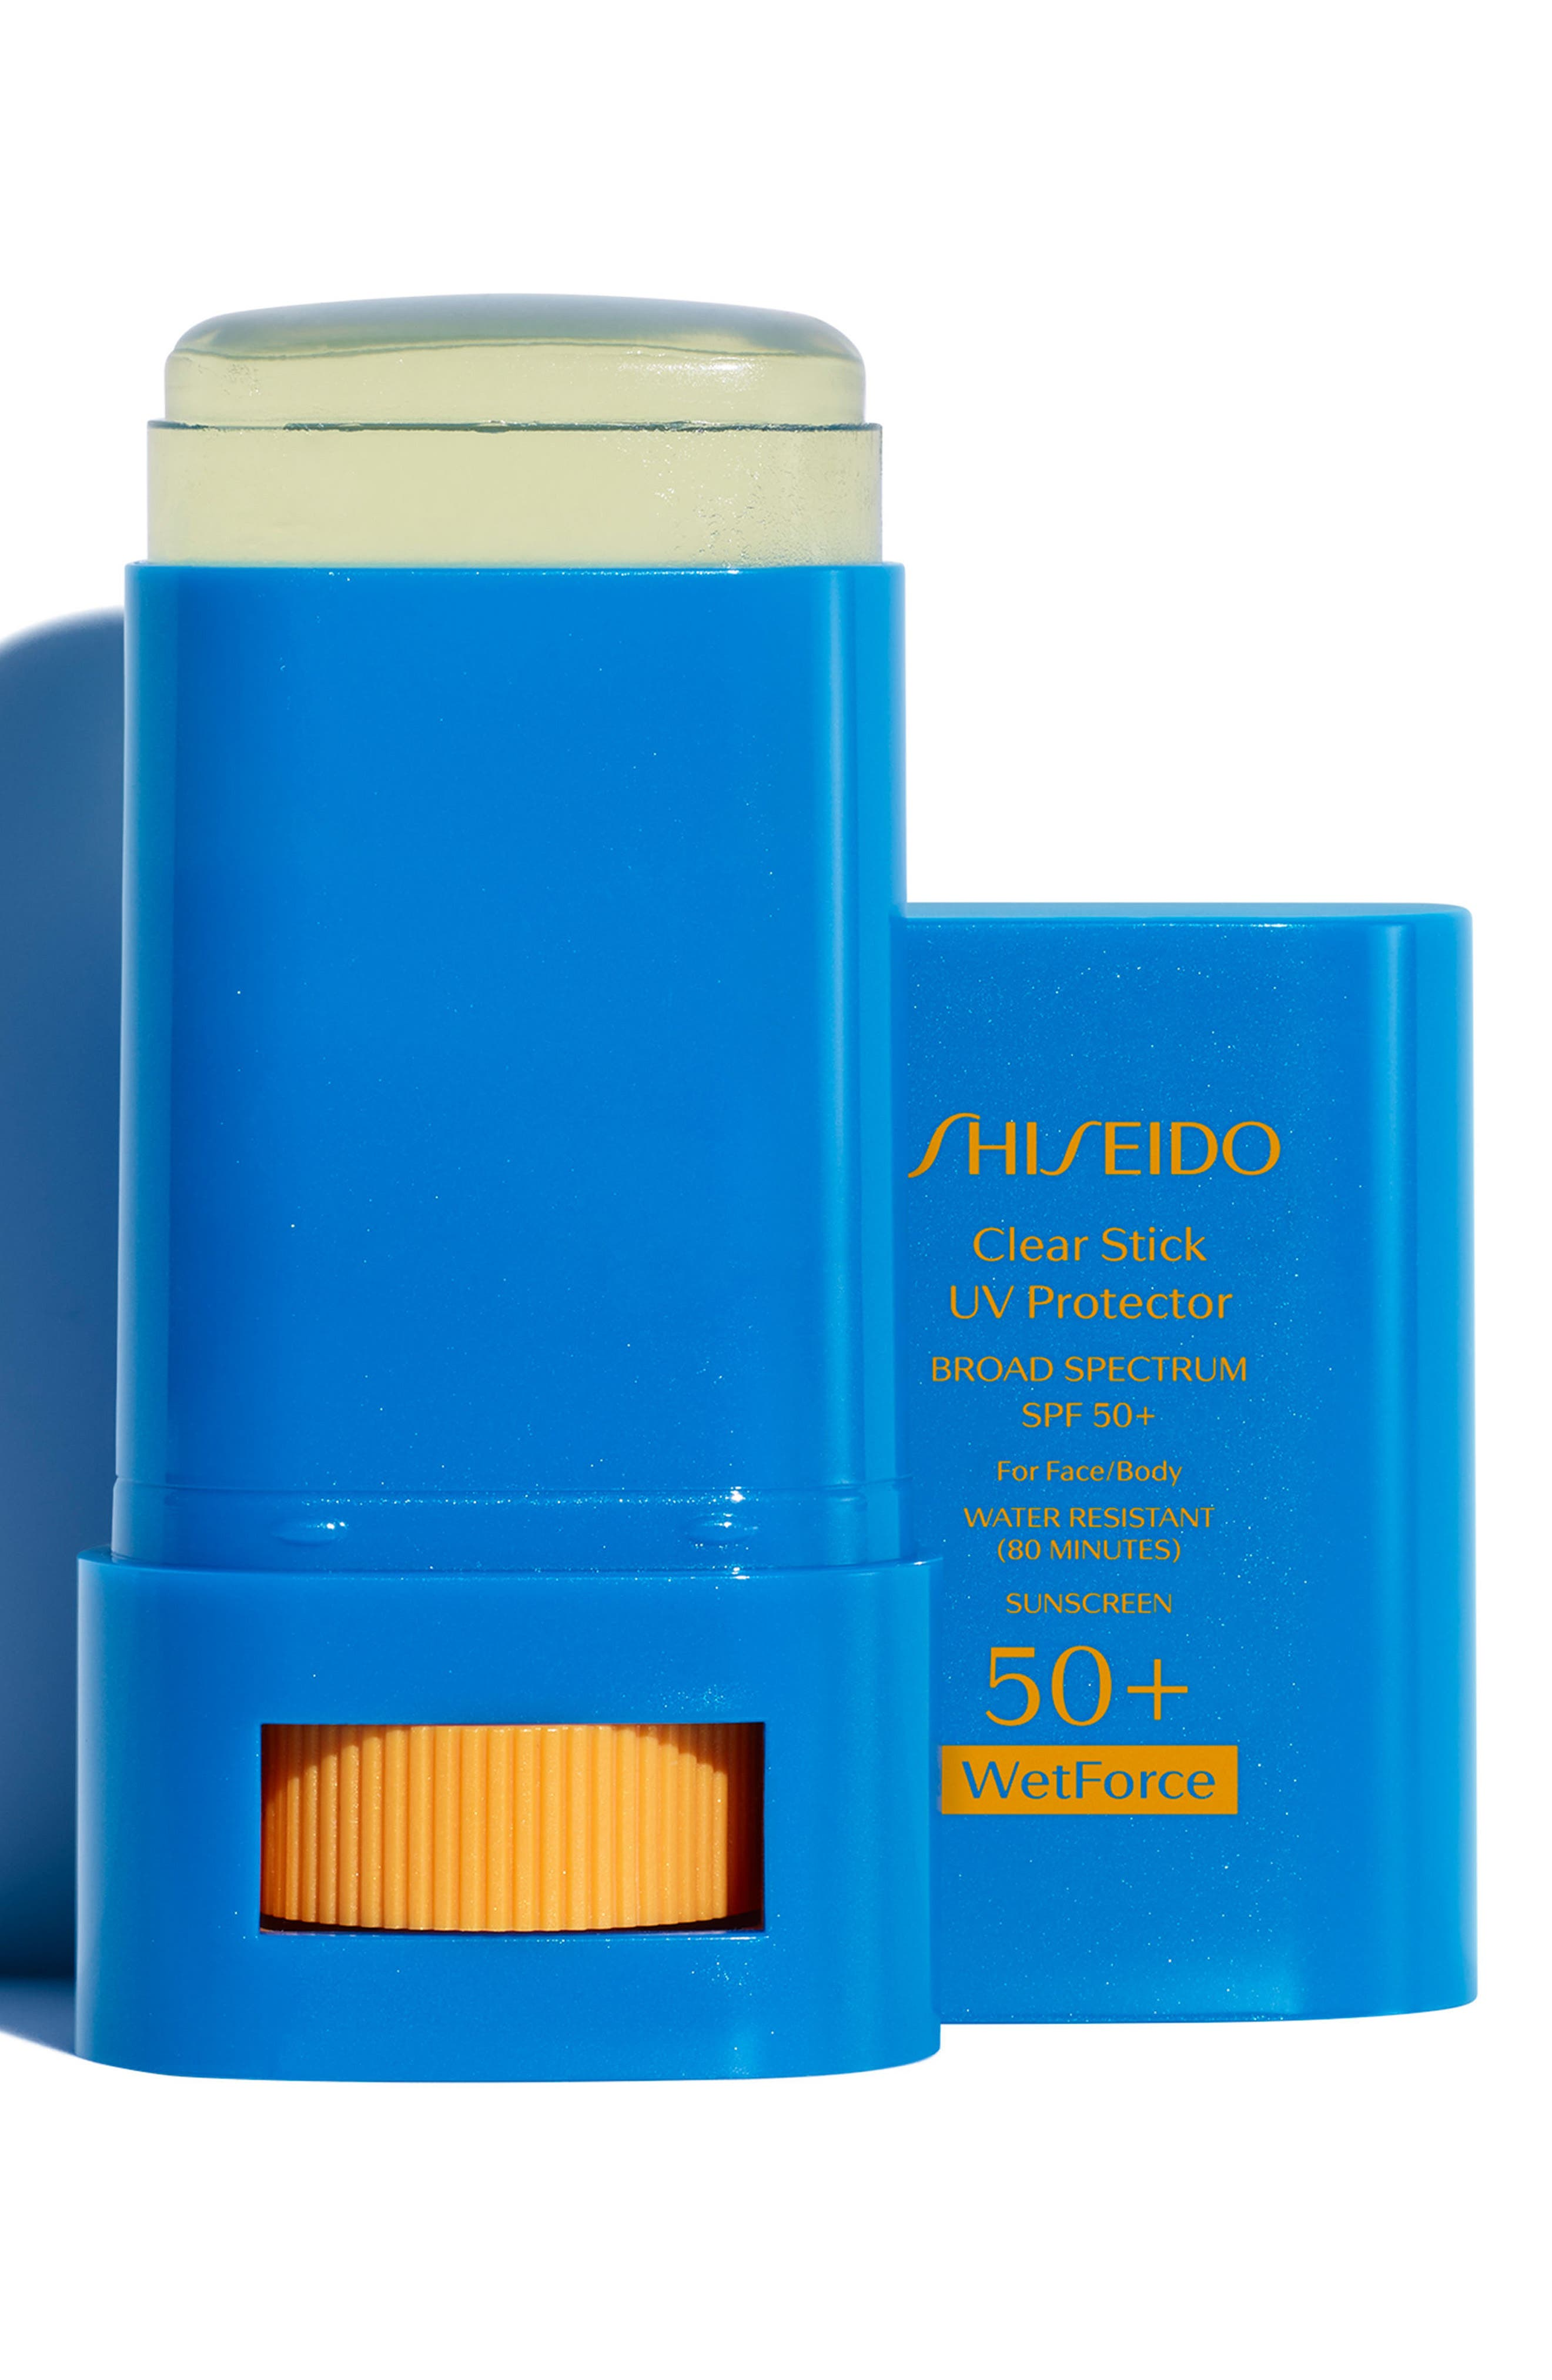 SHISEIDO,                             WetForce Clear Stick UV Protector Broad Spectrum SPF 50+,                             Alternate thumbnail 2, color,                             NO COLOR